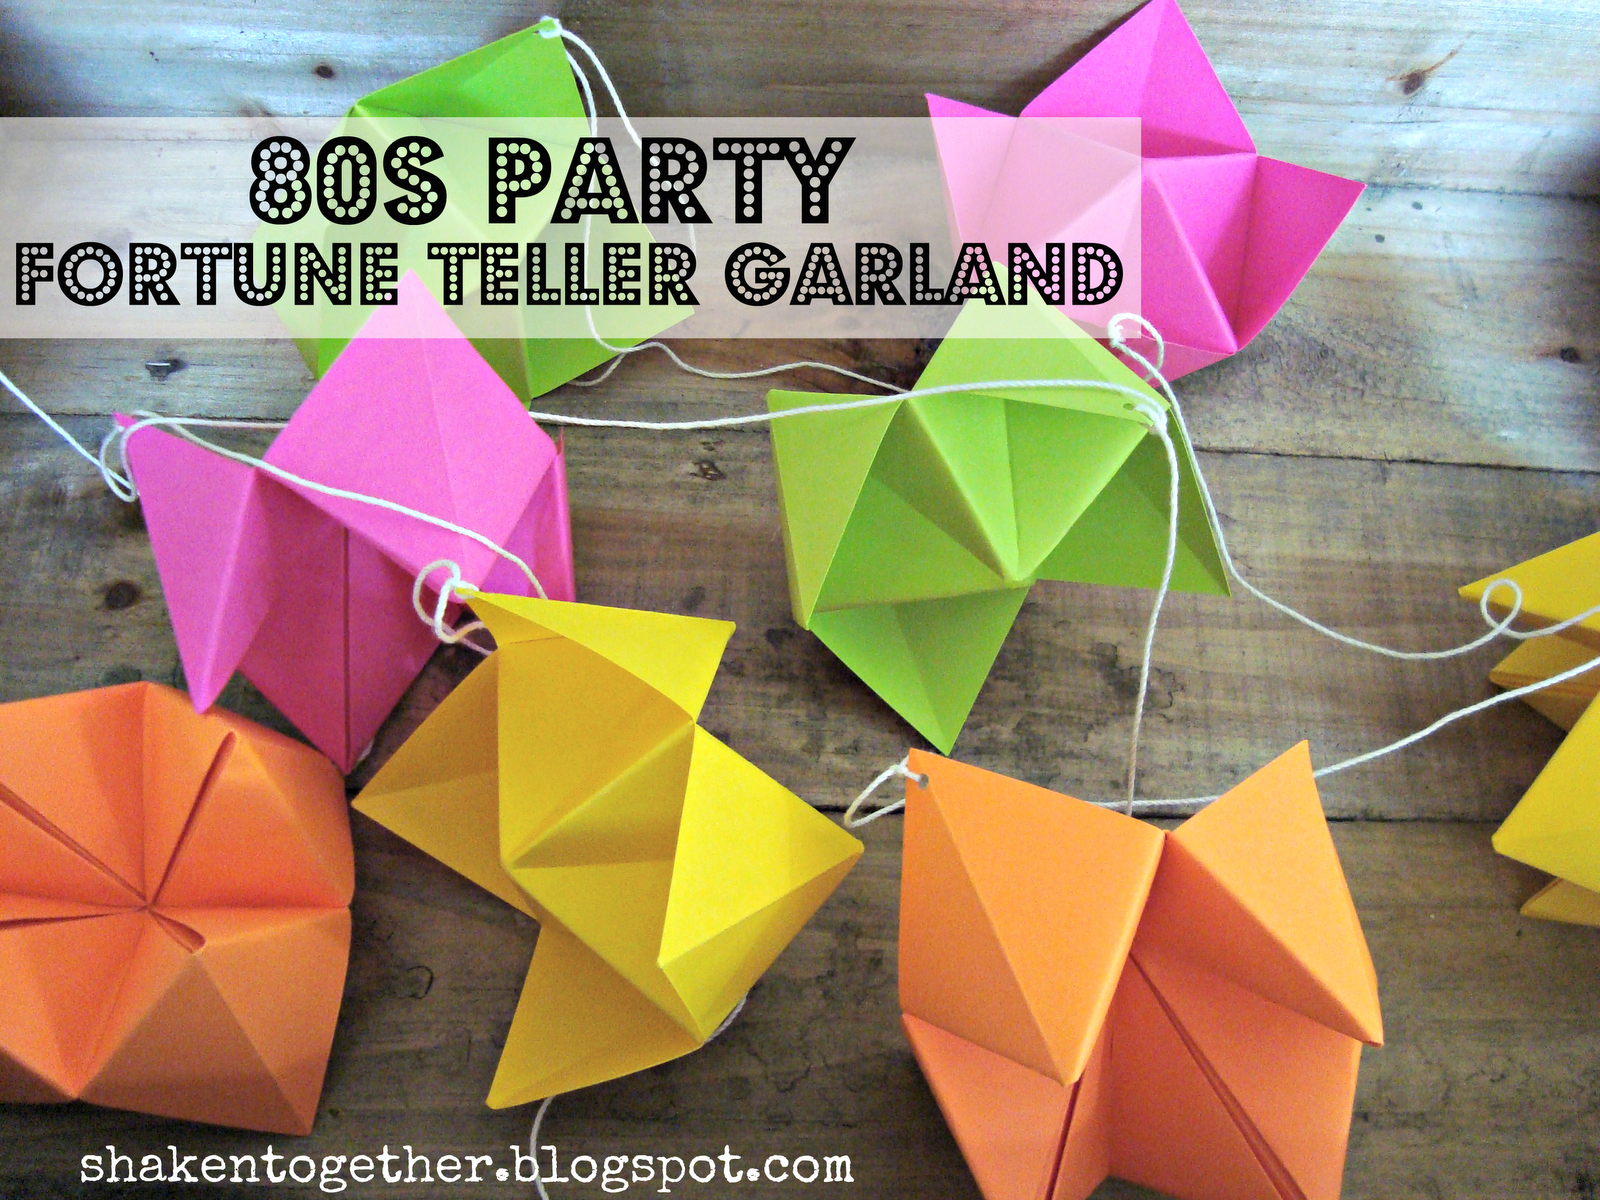 80u0027s decorations for parties | Letu0027s kick off the party with an easy neon fortune & 80u0027s decorations for parties | Letu0027s kick off the party with an easy ...